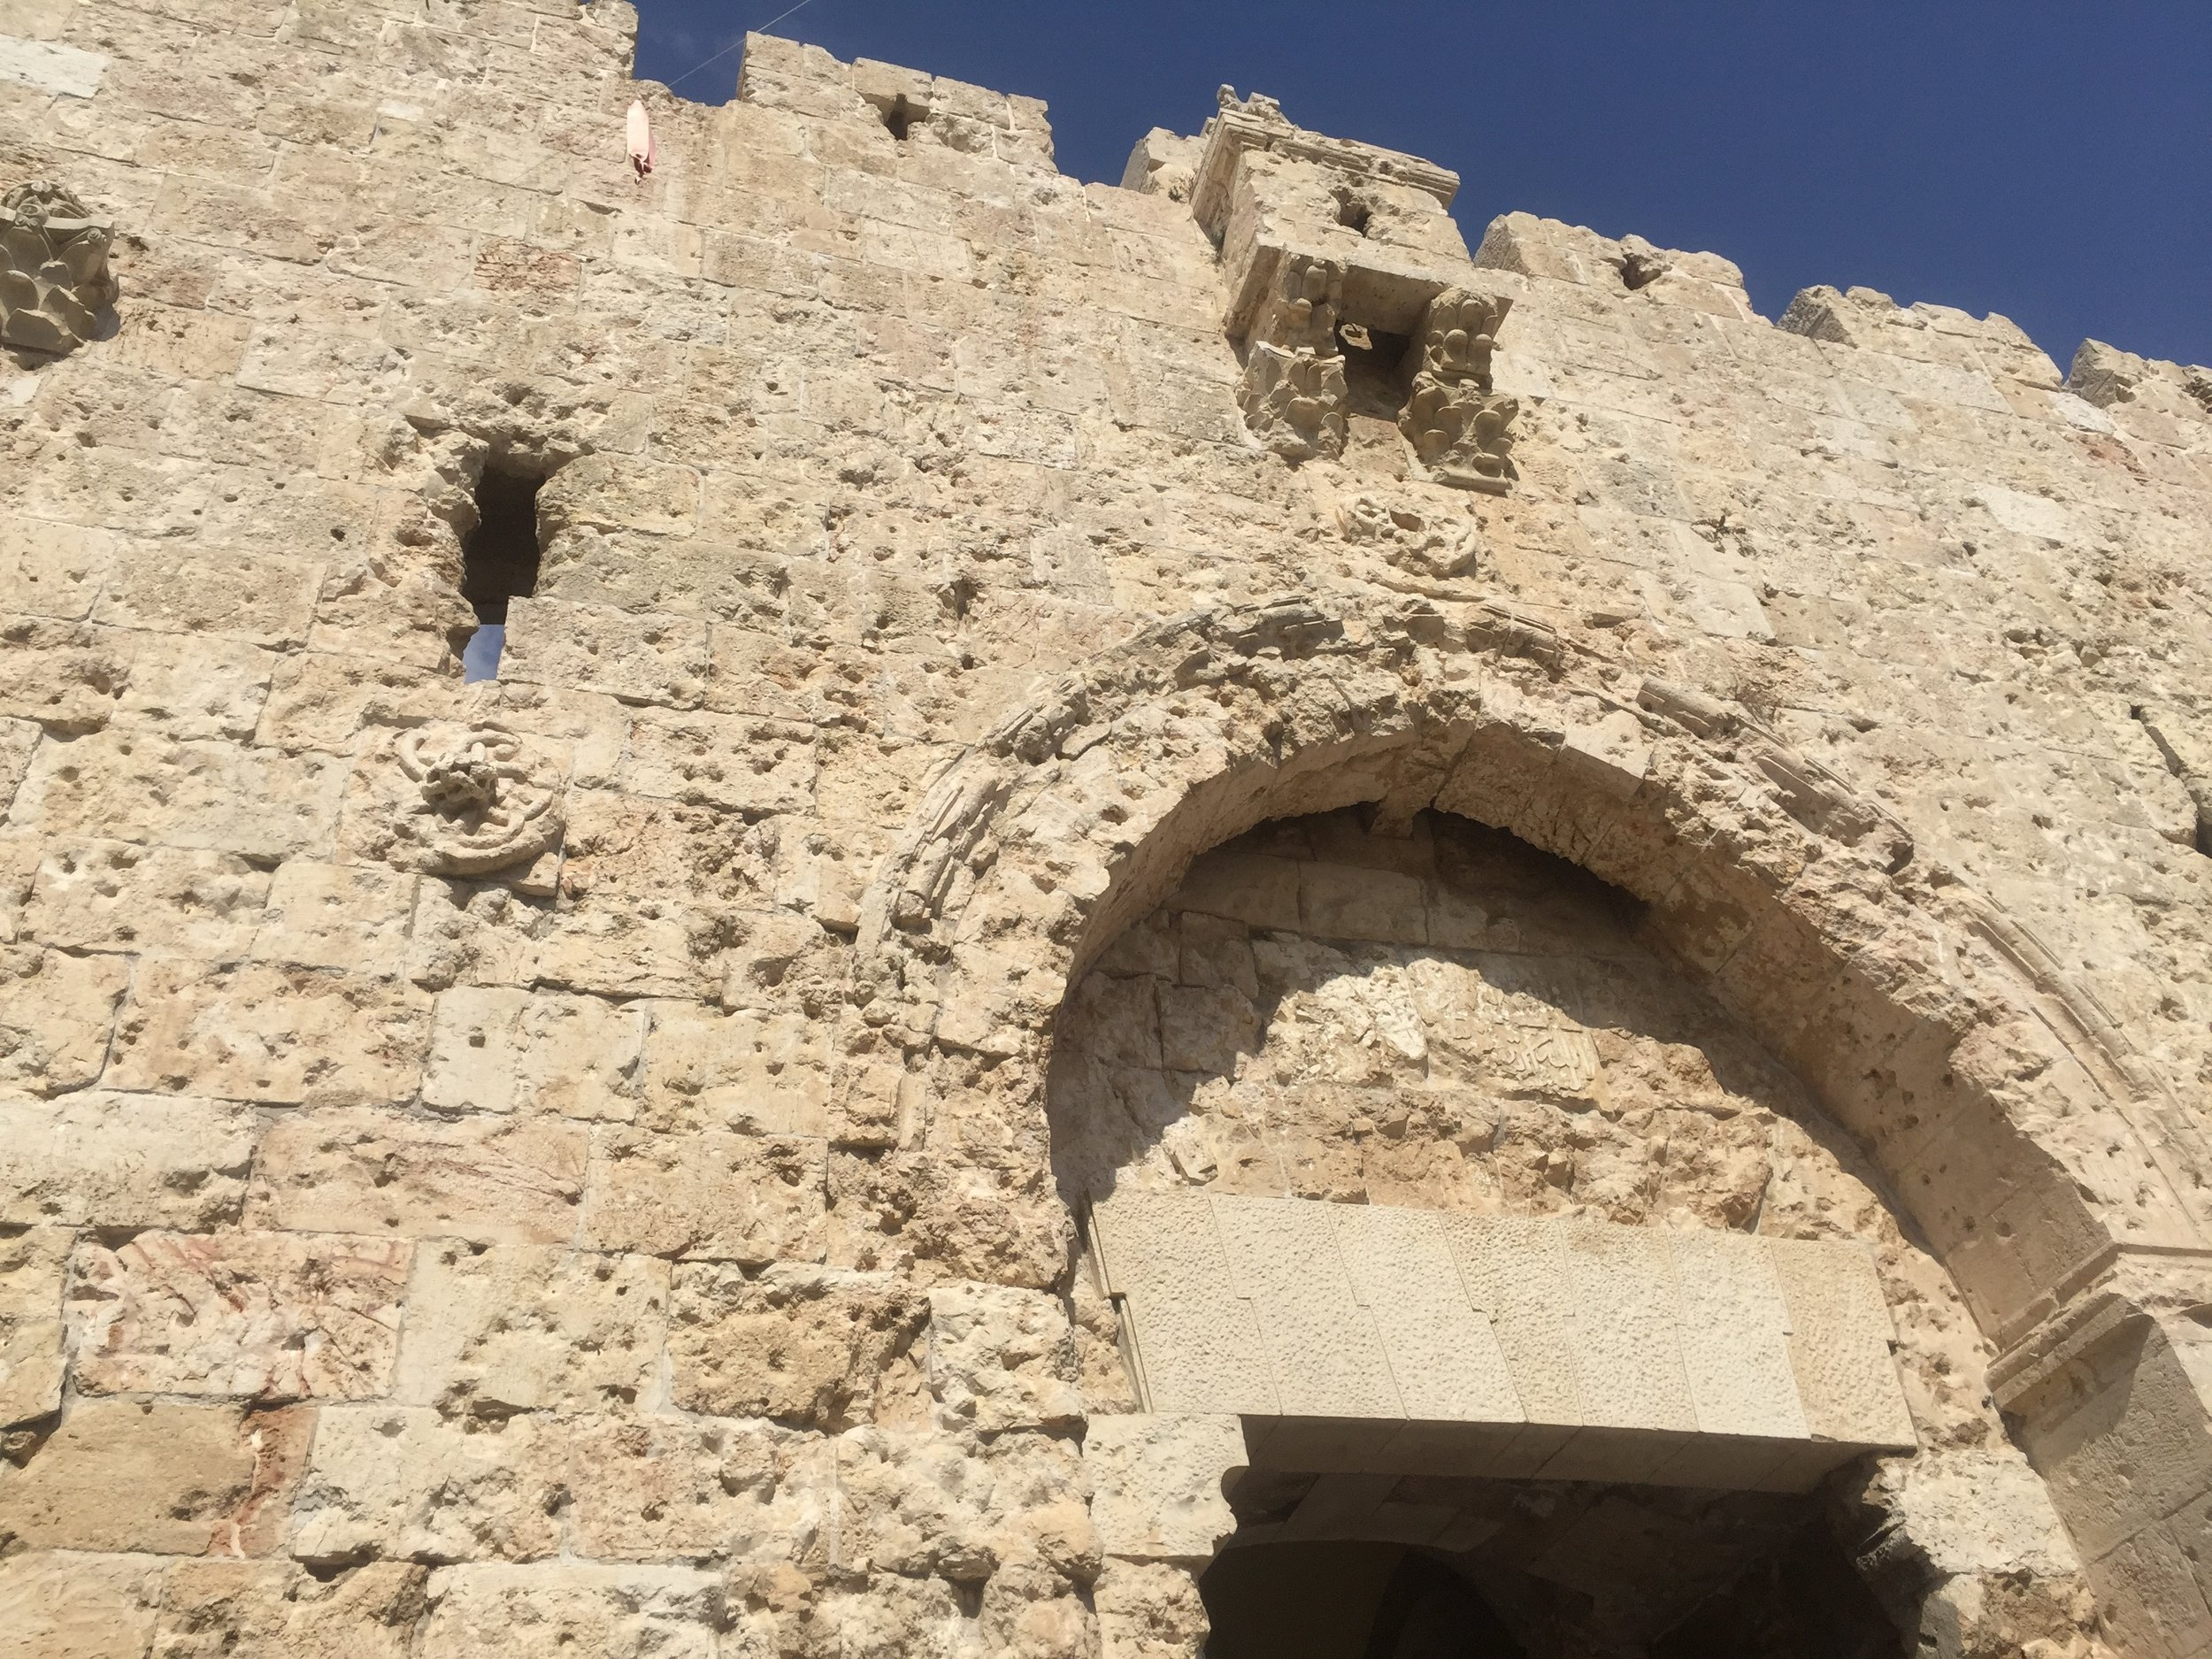 The walls are pock-marked with the bullet holes from past conflicts.